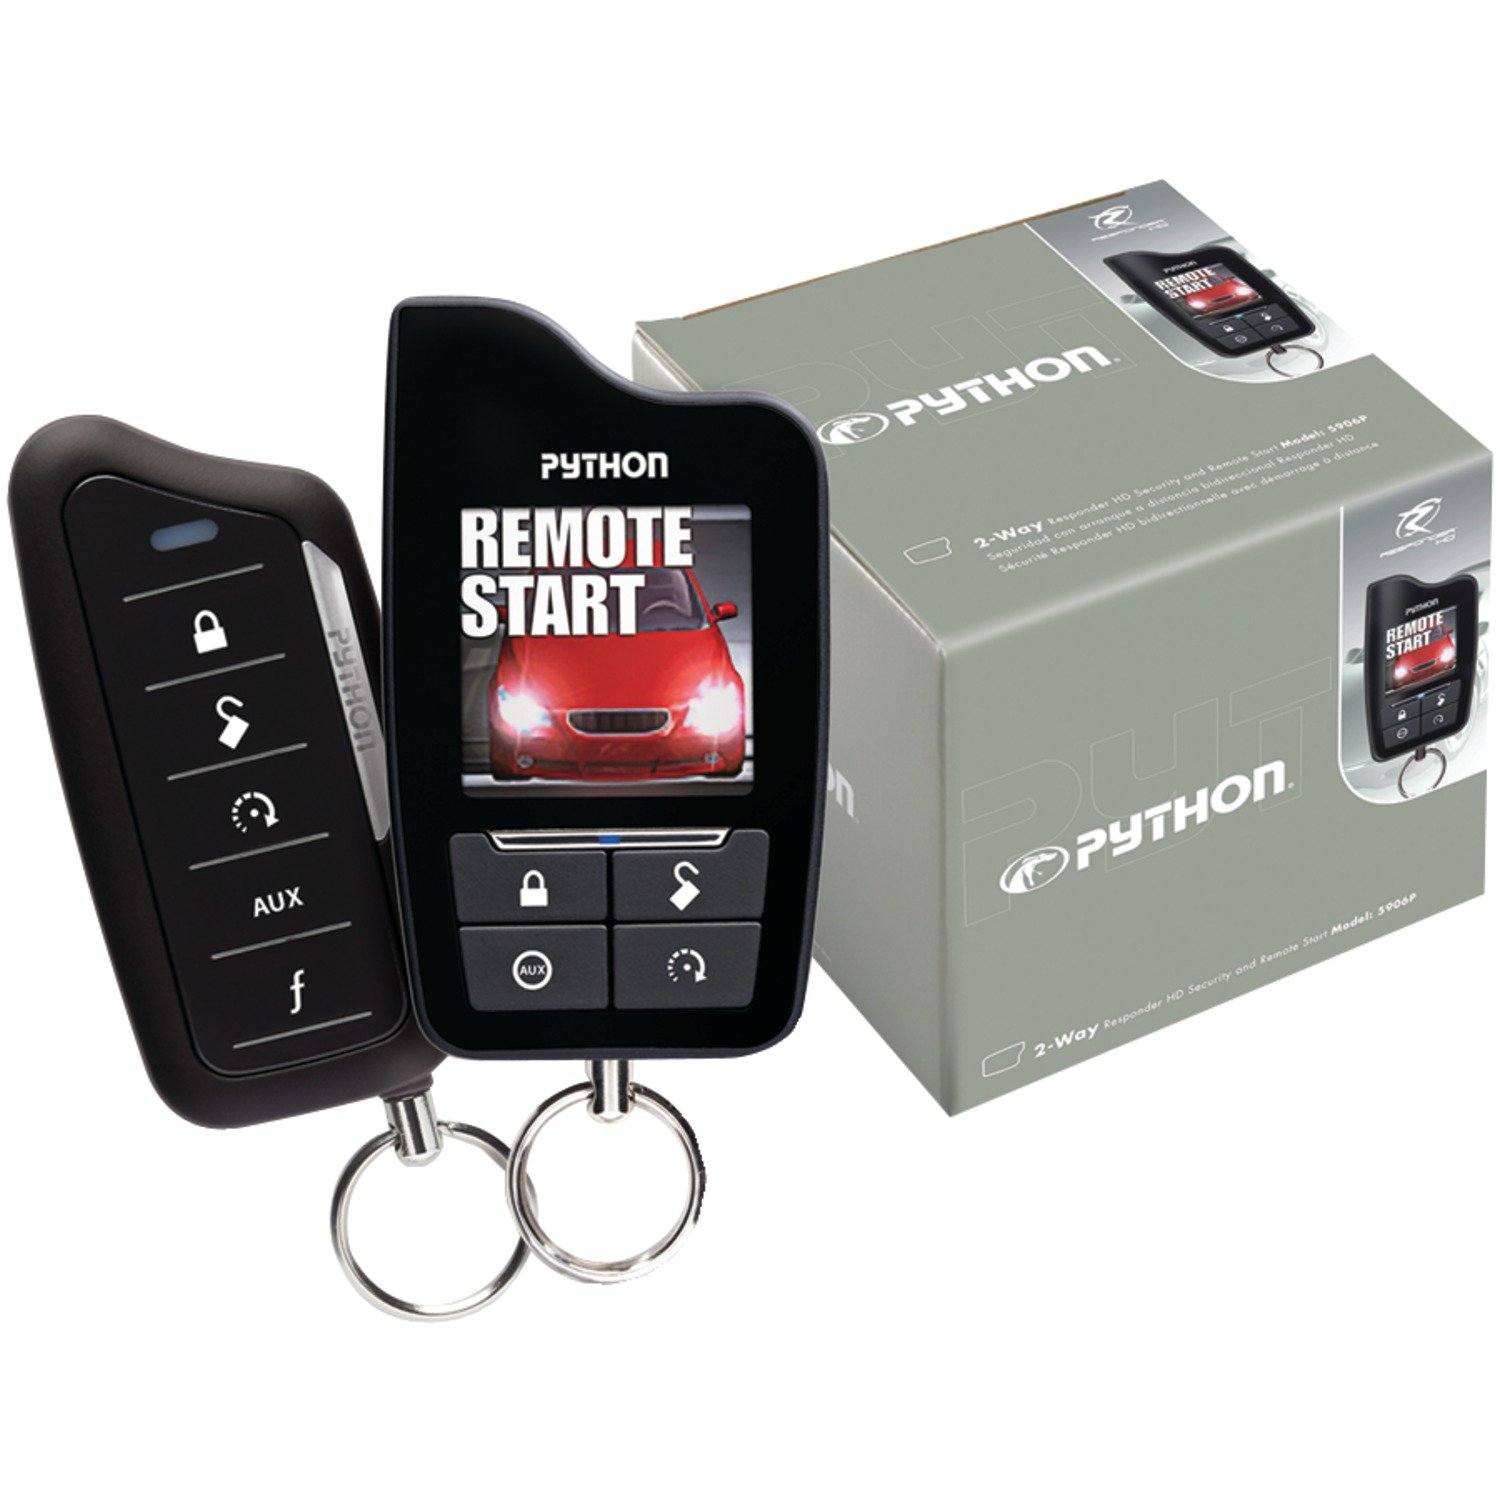 python 474p remote start wiring diagram python 474p remote start amazon com python 4103p remote start system cell phones